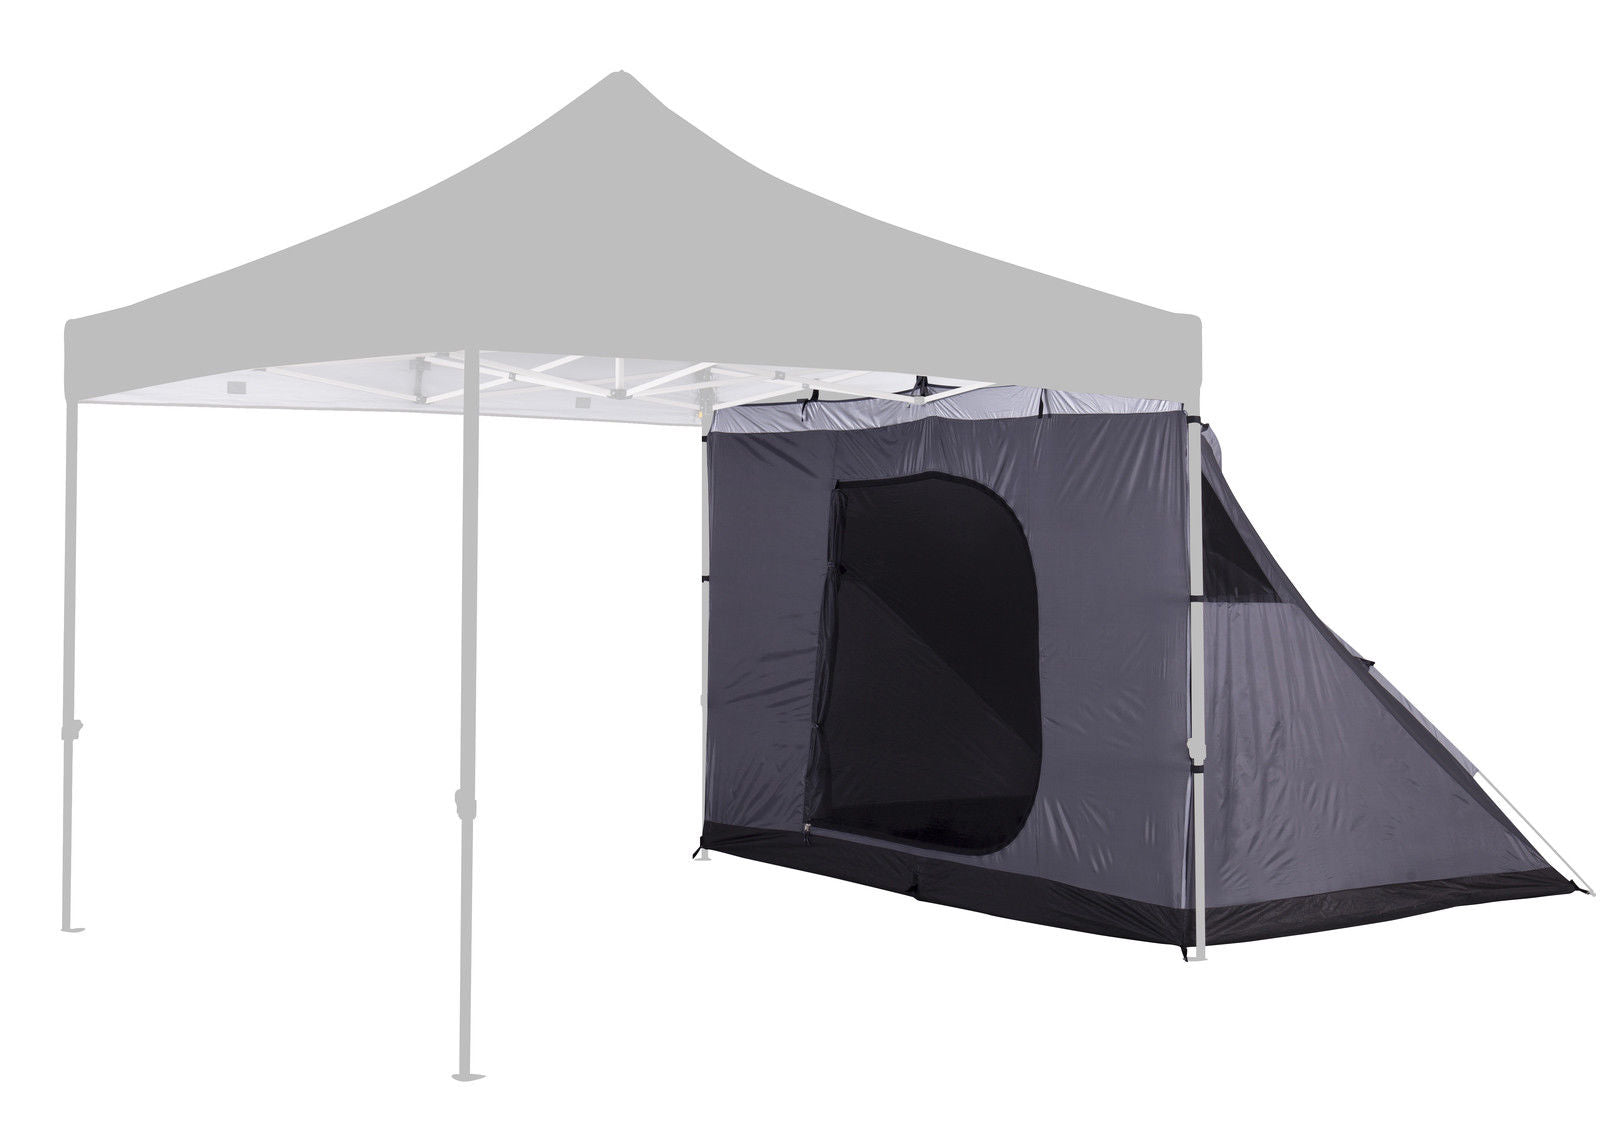 OZtrail Gazebo Pod Tent Outdoor Shelter - 3.0